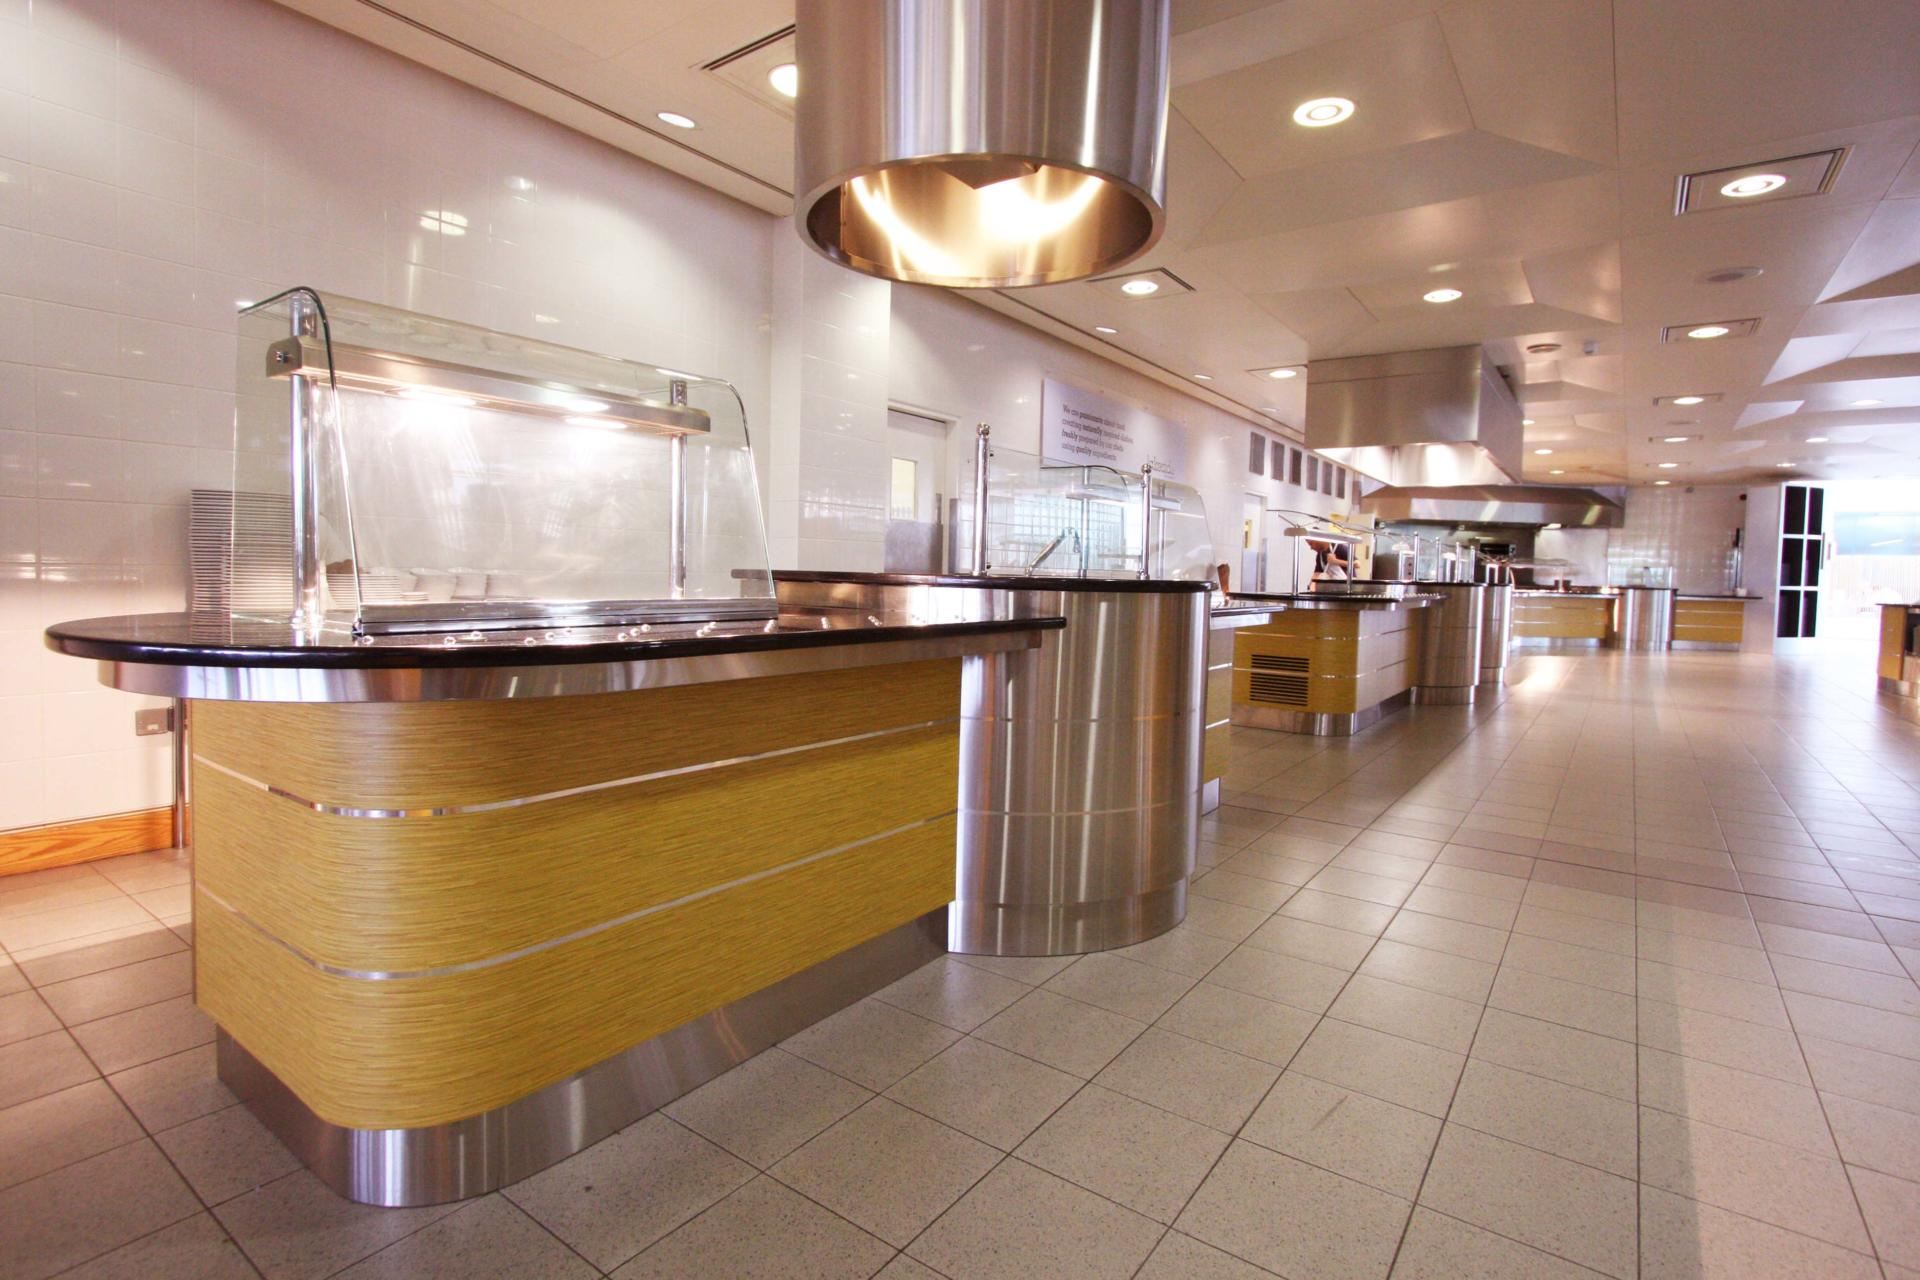 nationwide_swindon_staff restaurant_servery (1)